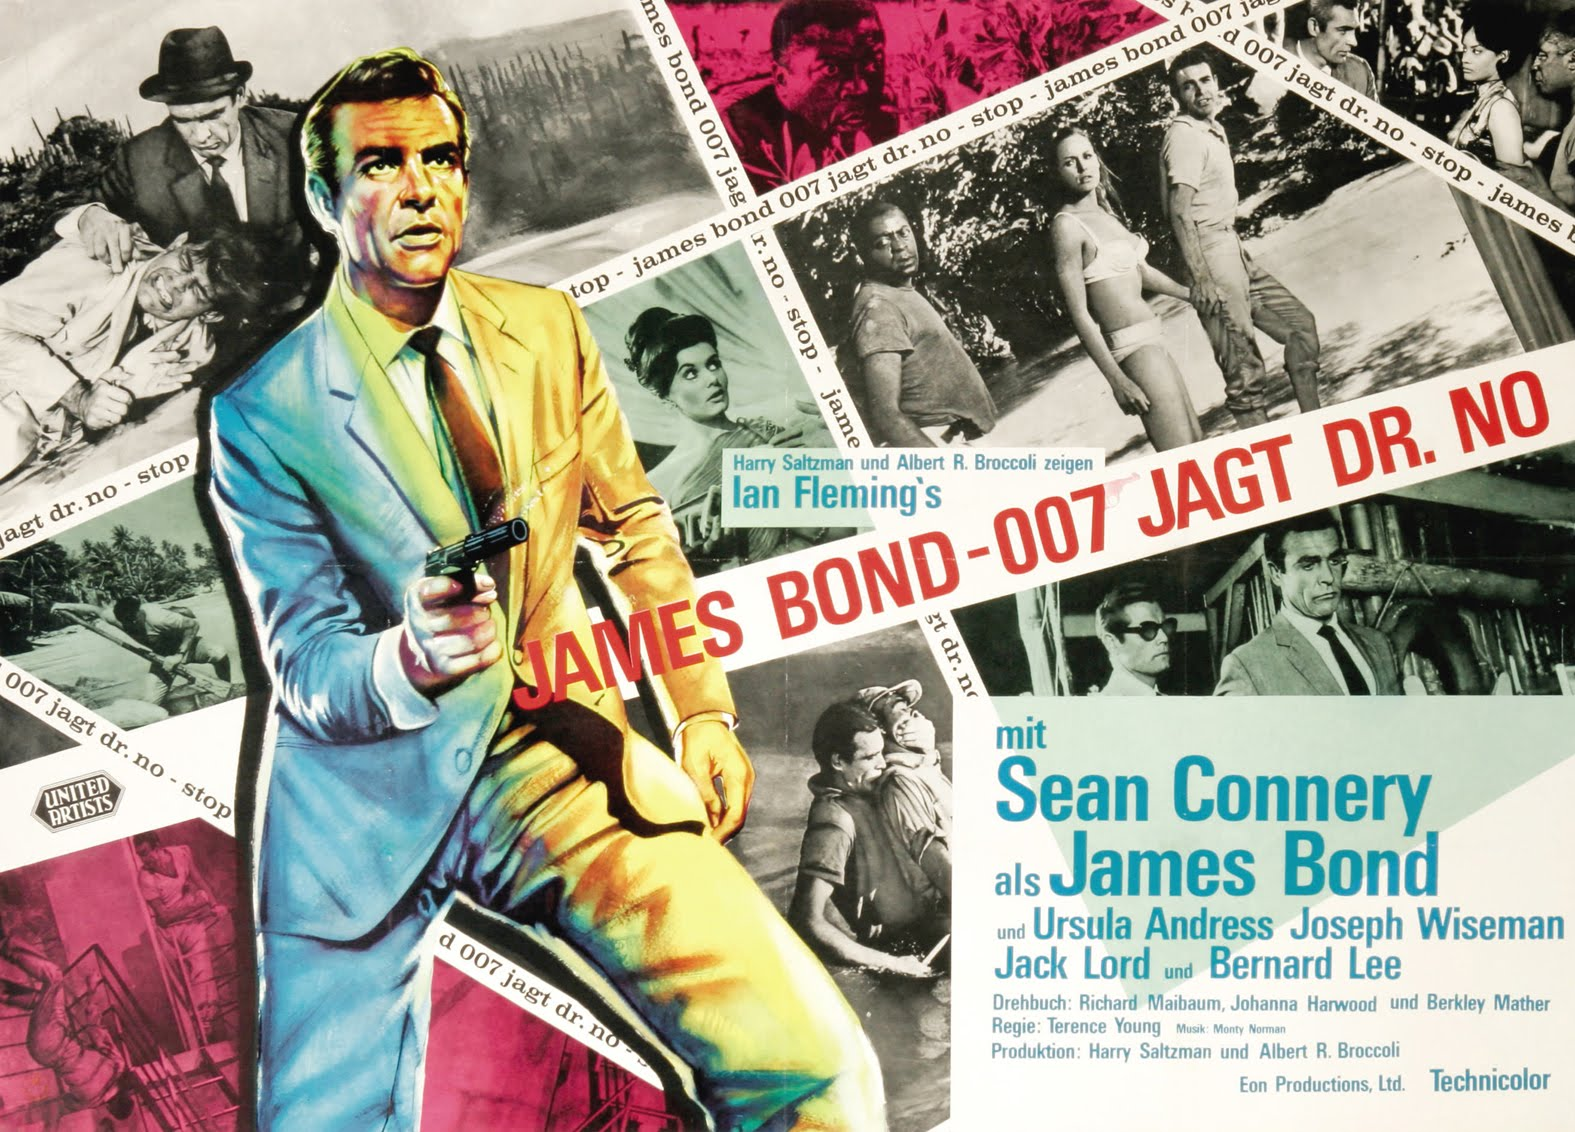 Dr. No Theatrical Poster